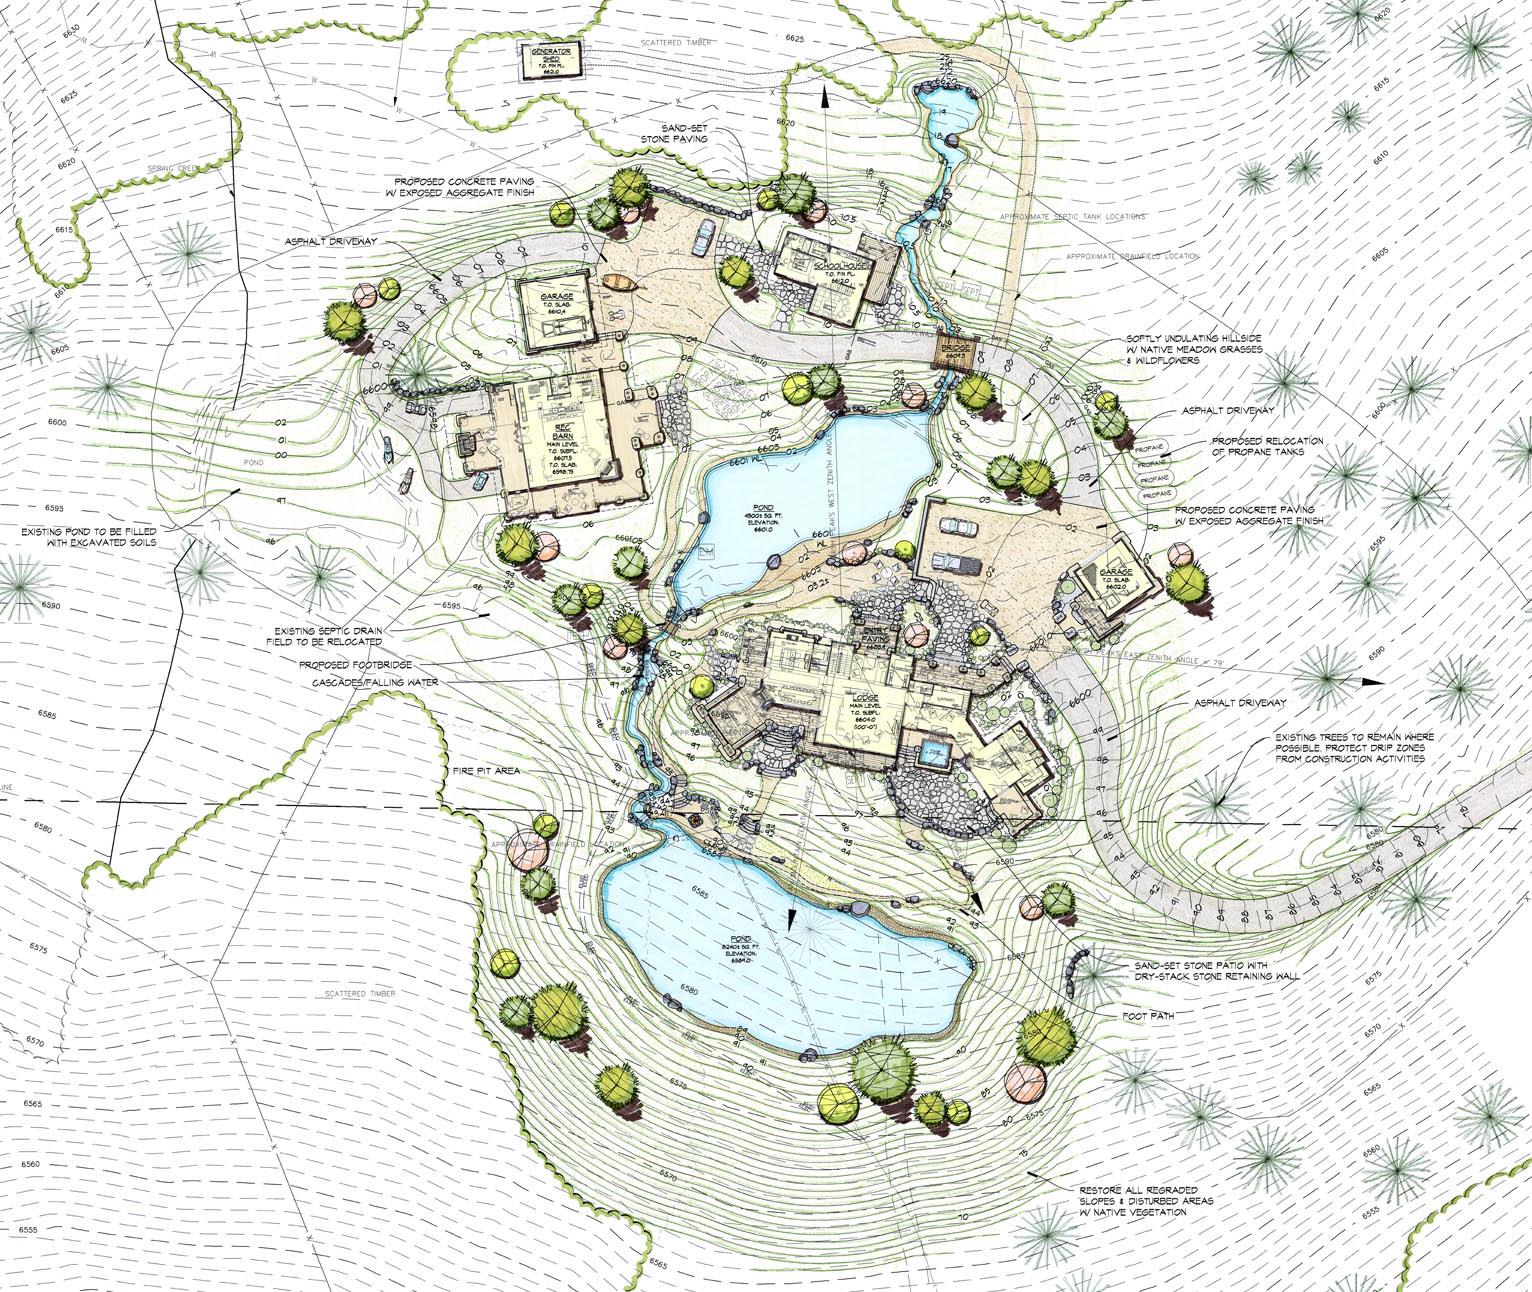 Master Planning - A blueprint for turning ideas into action.From design development to permitting and navigating local zoning codes, we guide each project from concept to completion for sites as diverse as full-scale residential development or a private ranch on a secluded property.